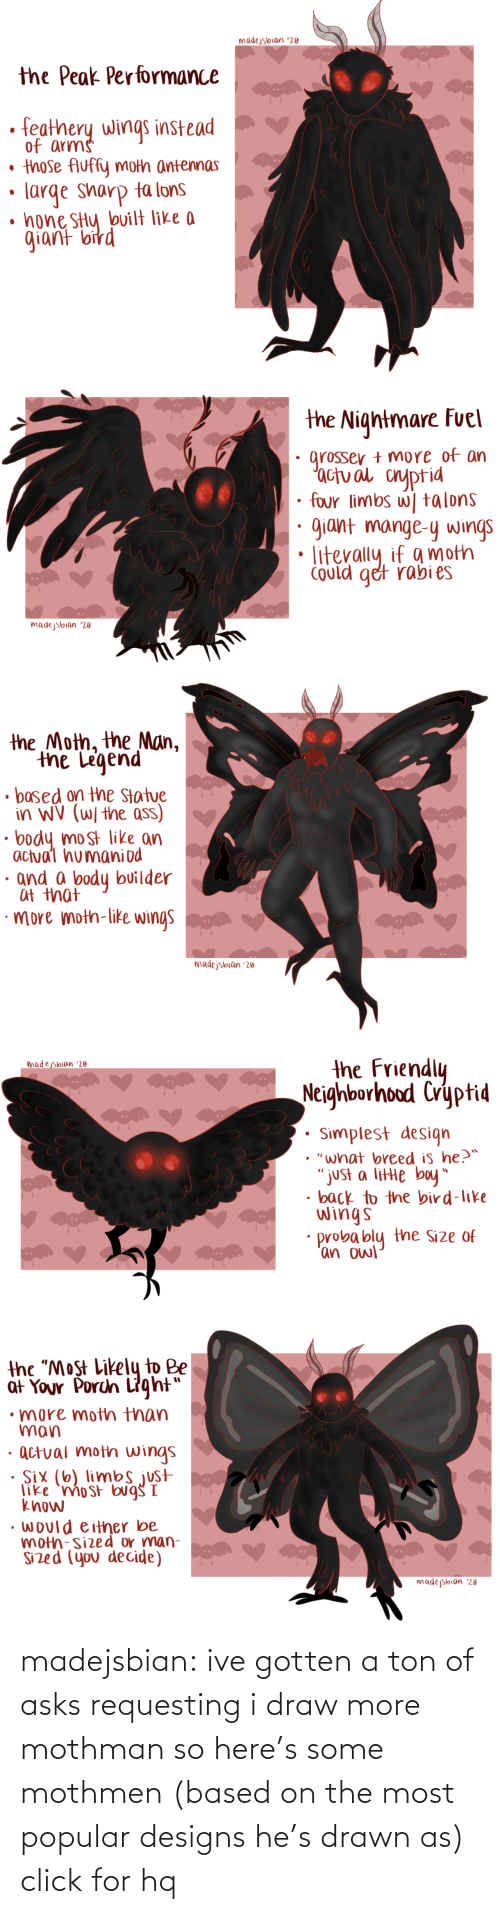 "Click: madejsbian '20  the Peak Performance  feathery wings instead  of arms  • those Auffy moth antennas  large sharp ta lons  • hone SHy bvilt like a  giant bird   the Nightmare Fuel  grosser + more of an  'actual cnyptid  four limbs w| talons  giant mange-y wings  Could get rabi es  madejsbian '20   the Moth, the Man,  the Legend  • based on the Statue  in WV (W/ the ass)  body most like an  actual humaniod  · and a body builder  at that  ·more moth-like wings  madejsbian '20   the Friendly  Neighborhood Cryptid  madejsbian '20  Simplest design  • ""what breed is he?™  ""just a litte boy""  • back to the bird-like  wings  probably the Size of  'an owl   the ""Most Likely to Be  at Your Porch Light""  •more moth than  man  · actual moth wings  · Six (6) limbs just  like 'mo st bug I  know  • would either be  moth-sized or man-  Sized (you decide)  madejsbian '20 madejsbian: ive gotten a ton of asks requesting i draw more mothman so here's some mothmen (based on the most popular designs he's drawn as)